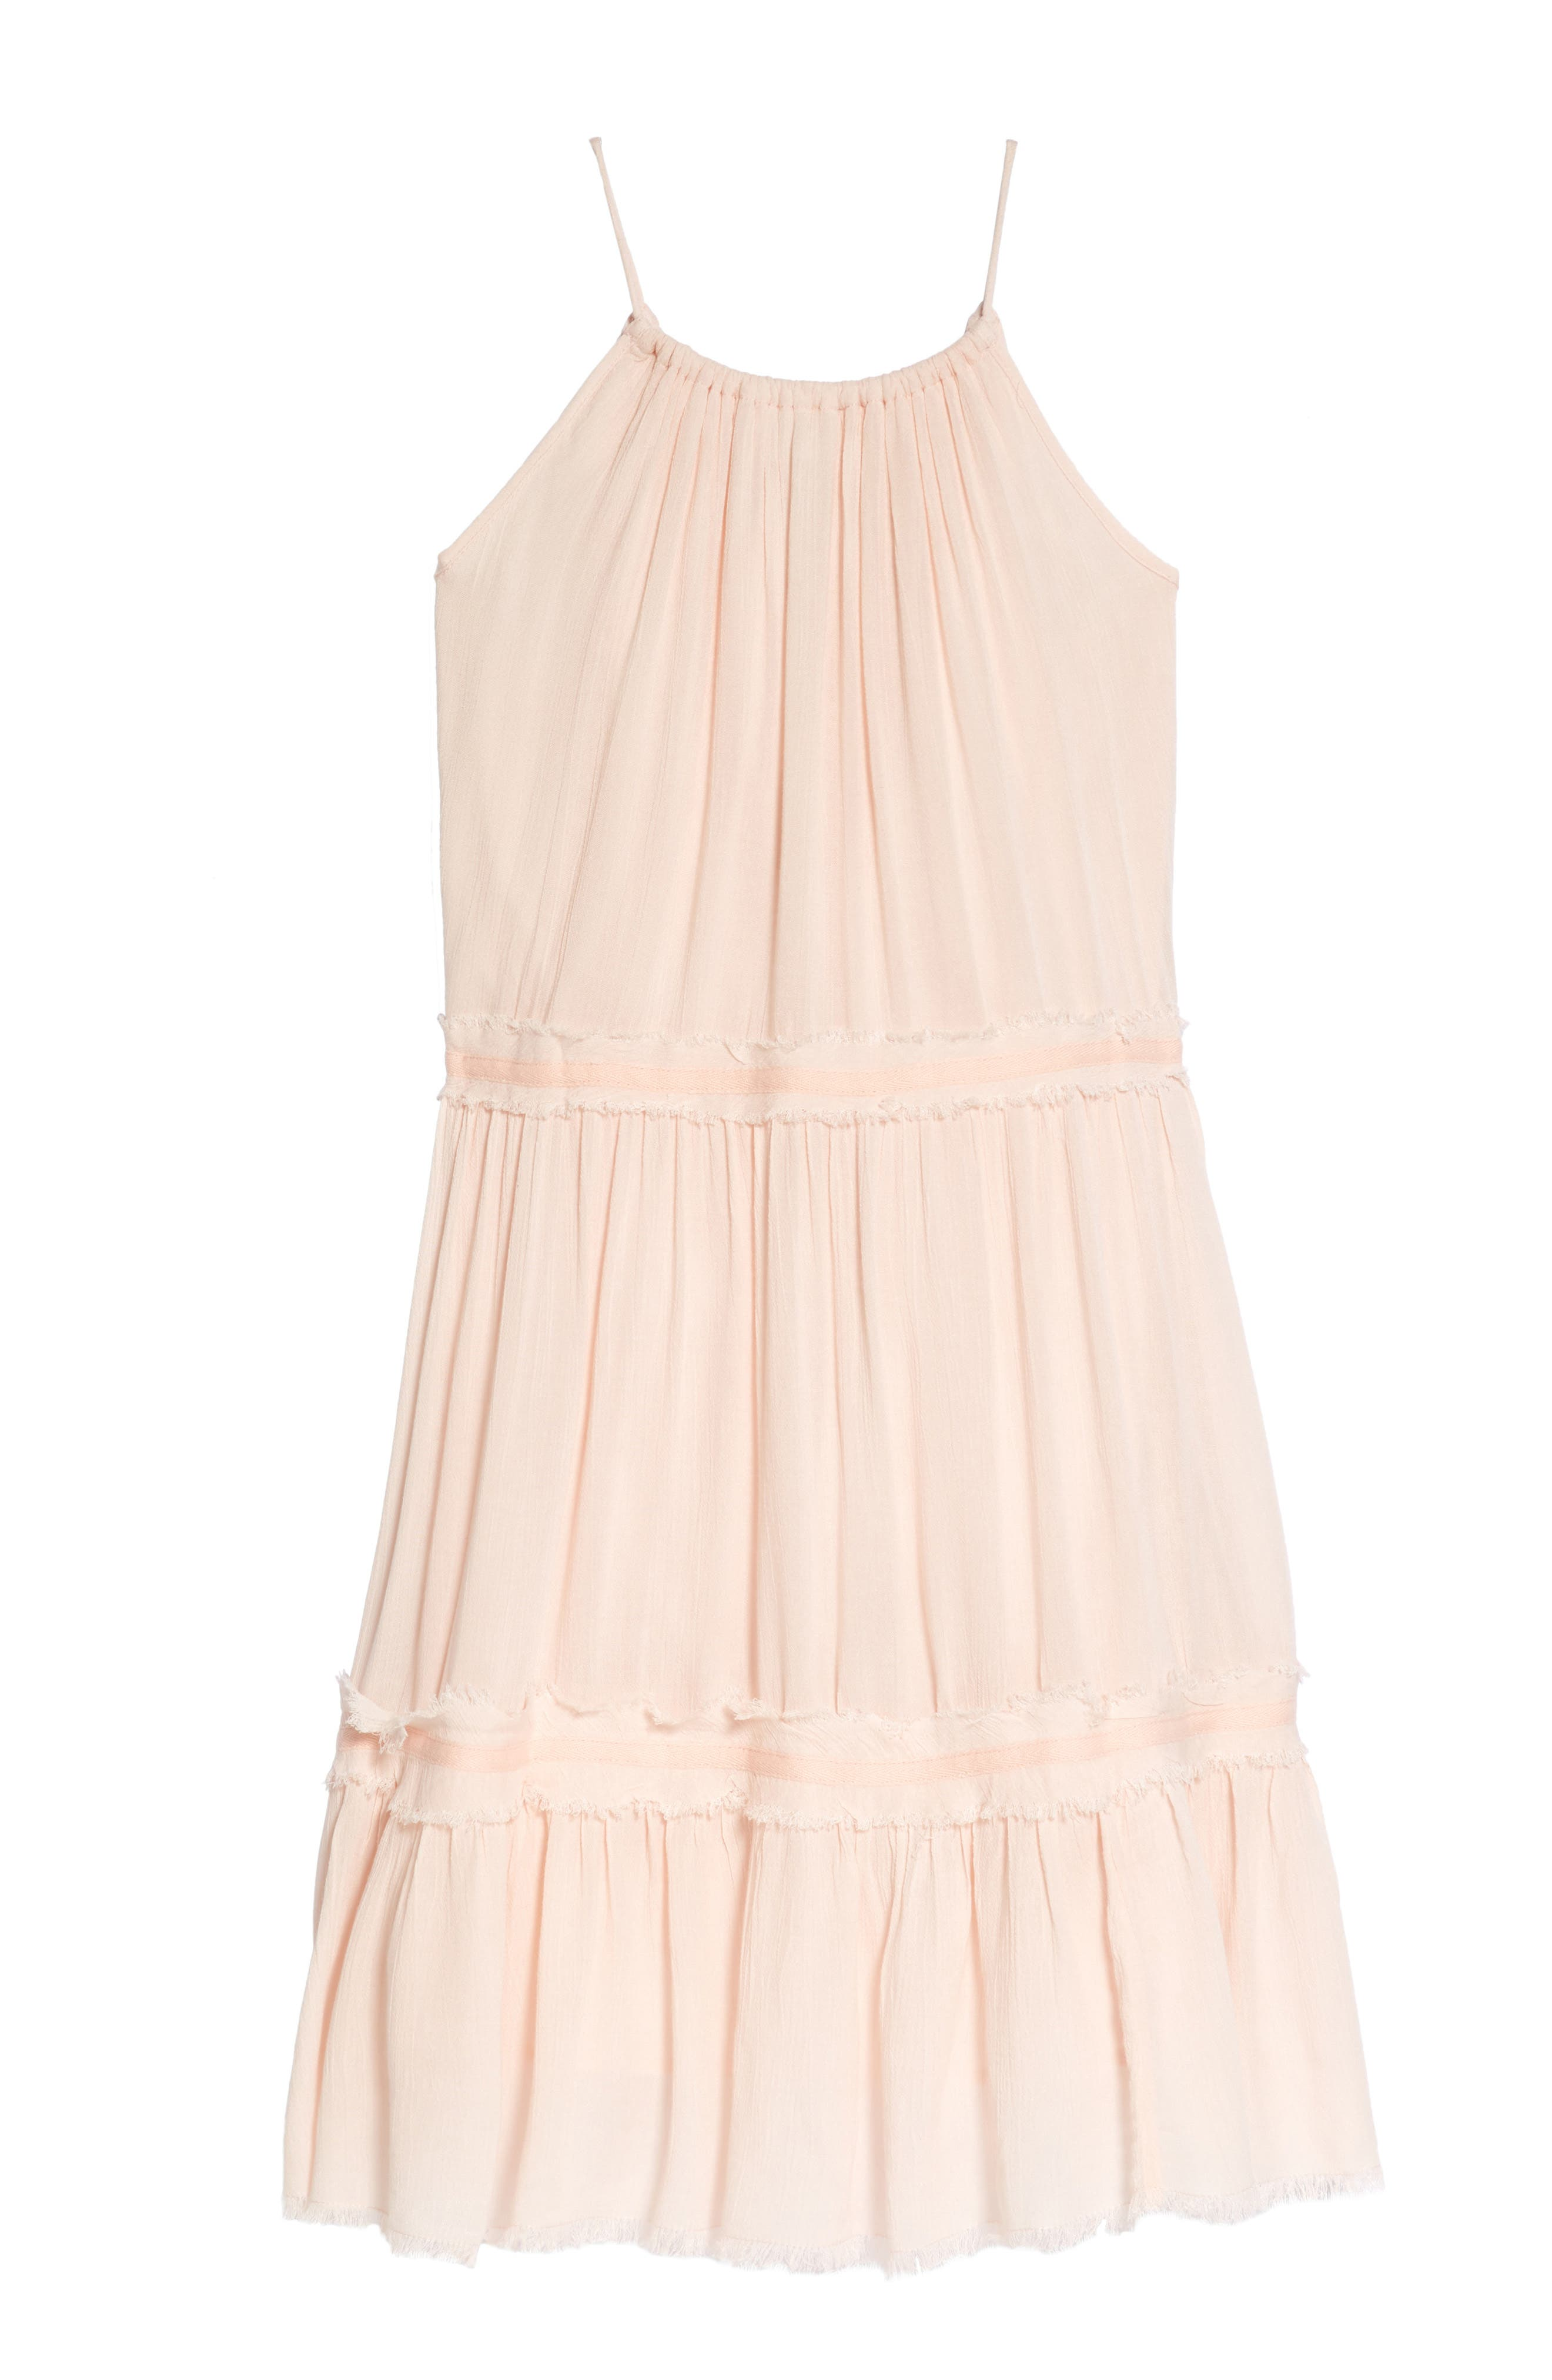 Gauzy Tiered Sundress,                             Alternate thumbnail 2, color,                             Pink Cloud